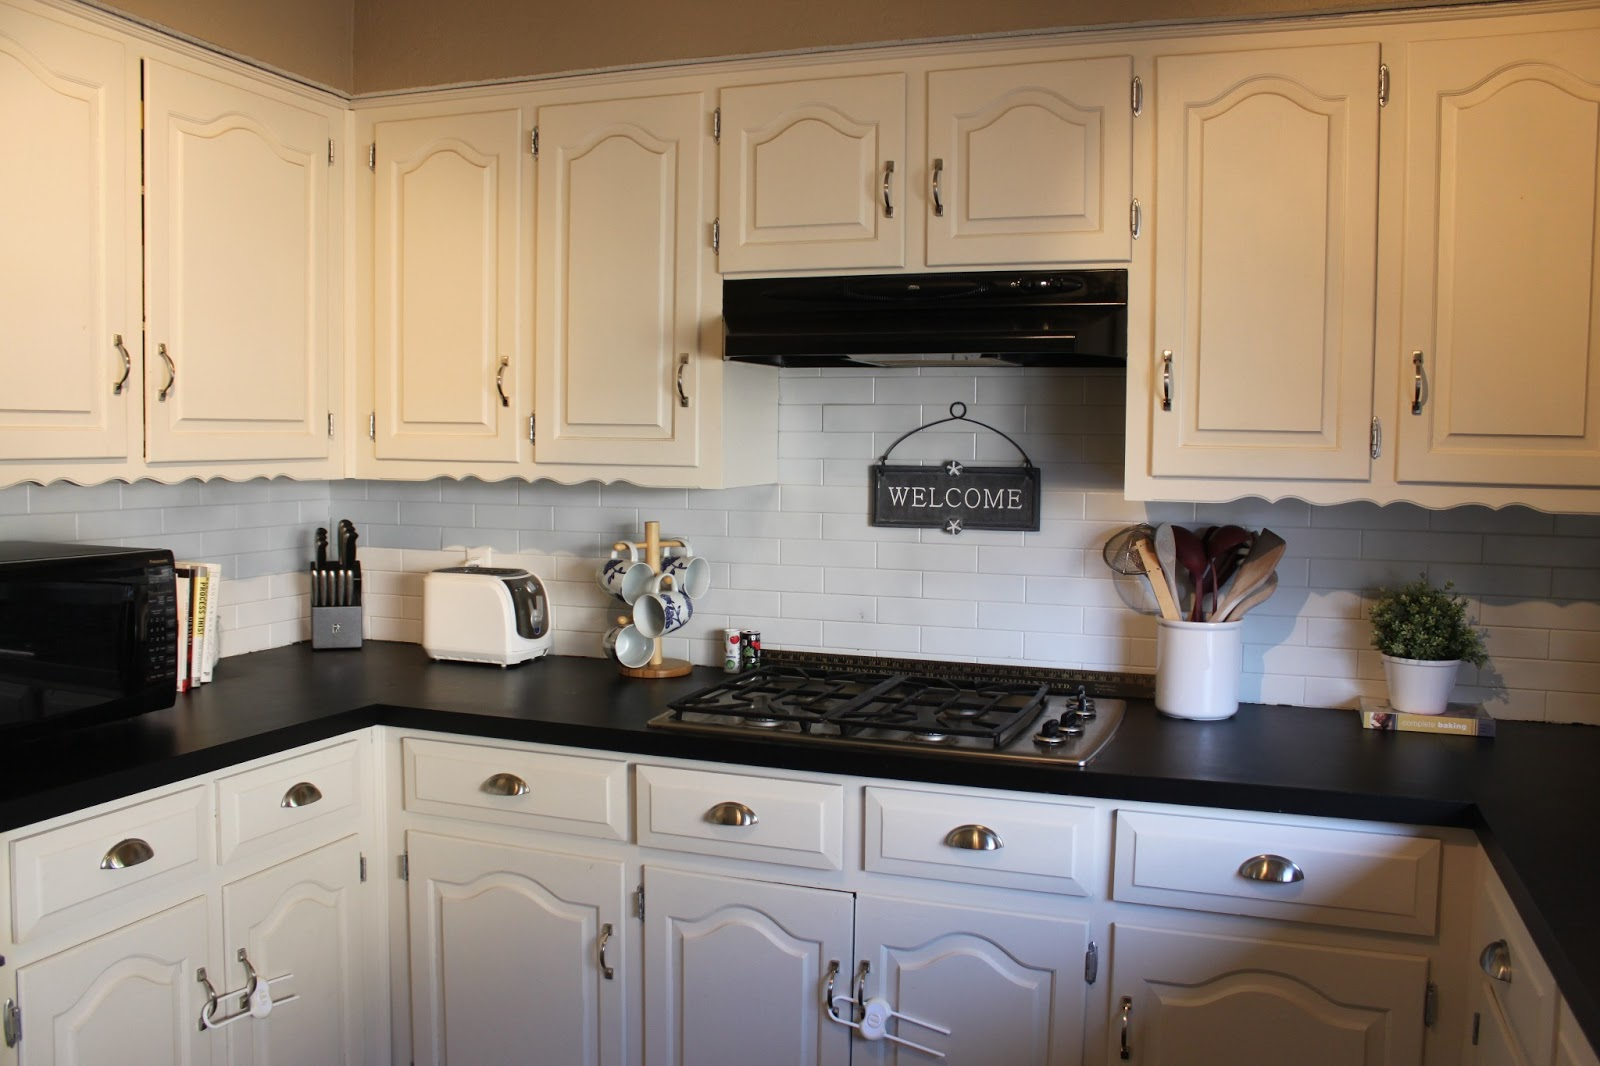 March Orchard Chalkboard Countertops Update